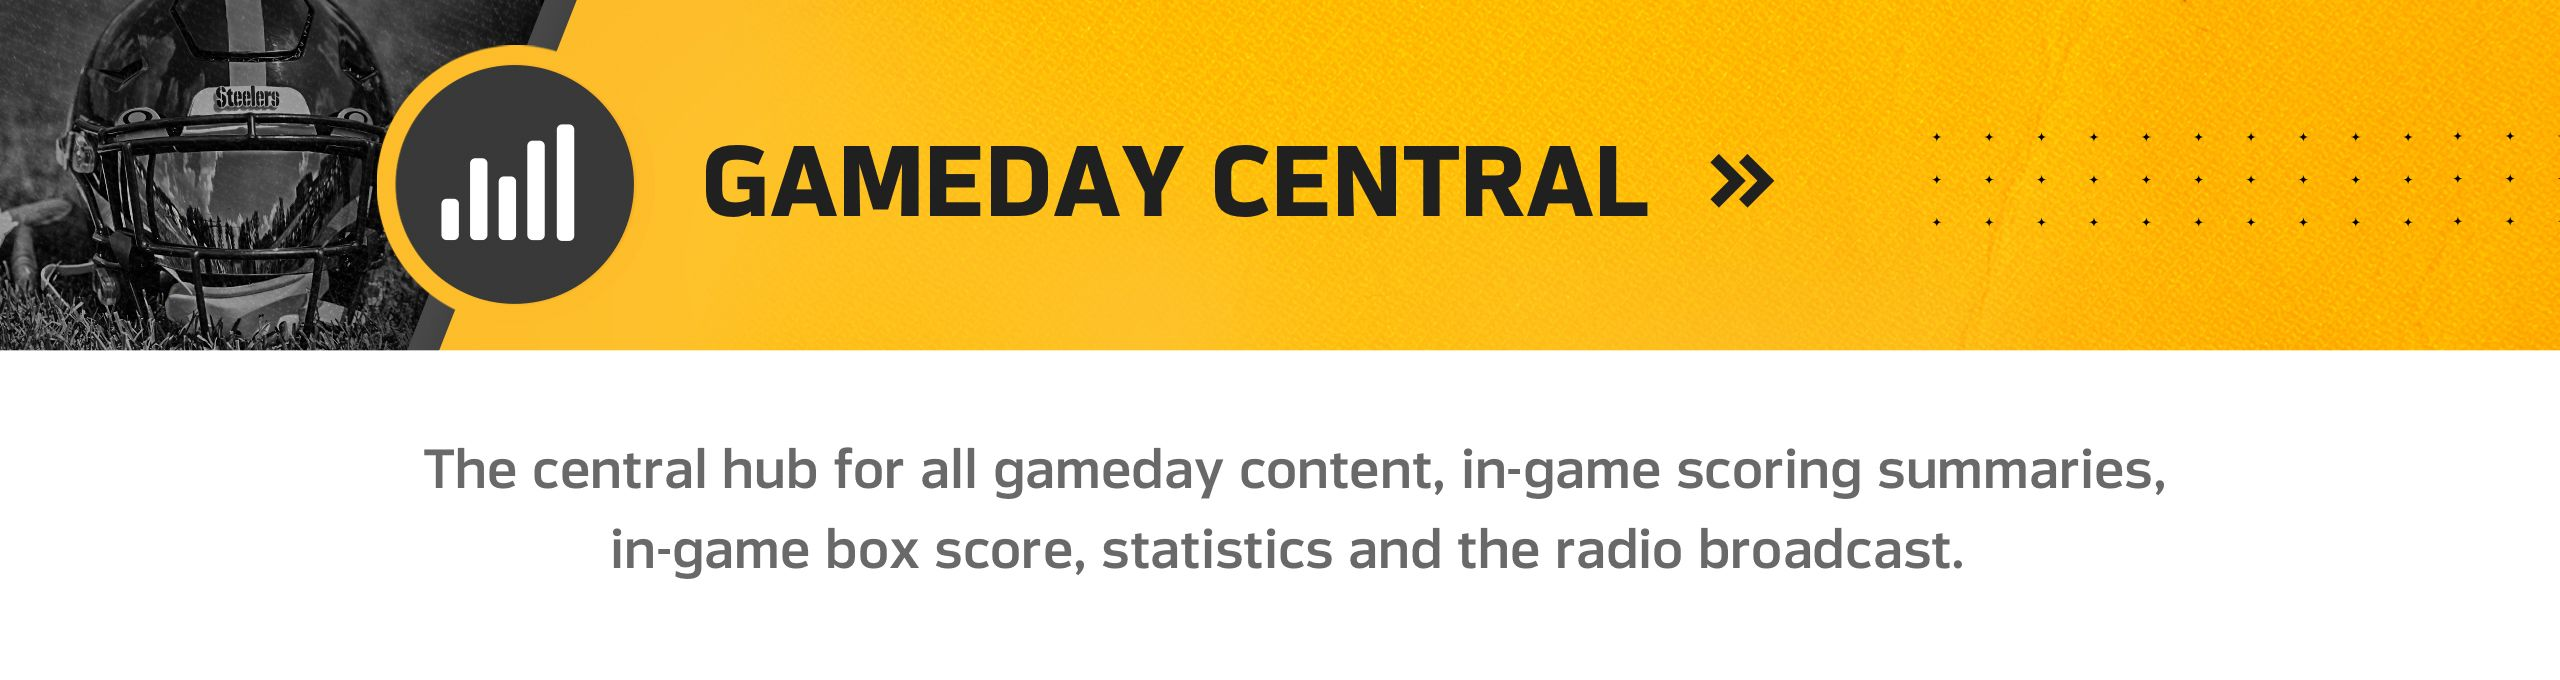 Gameday_Central